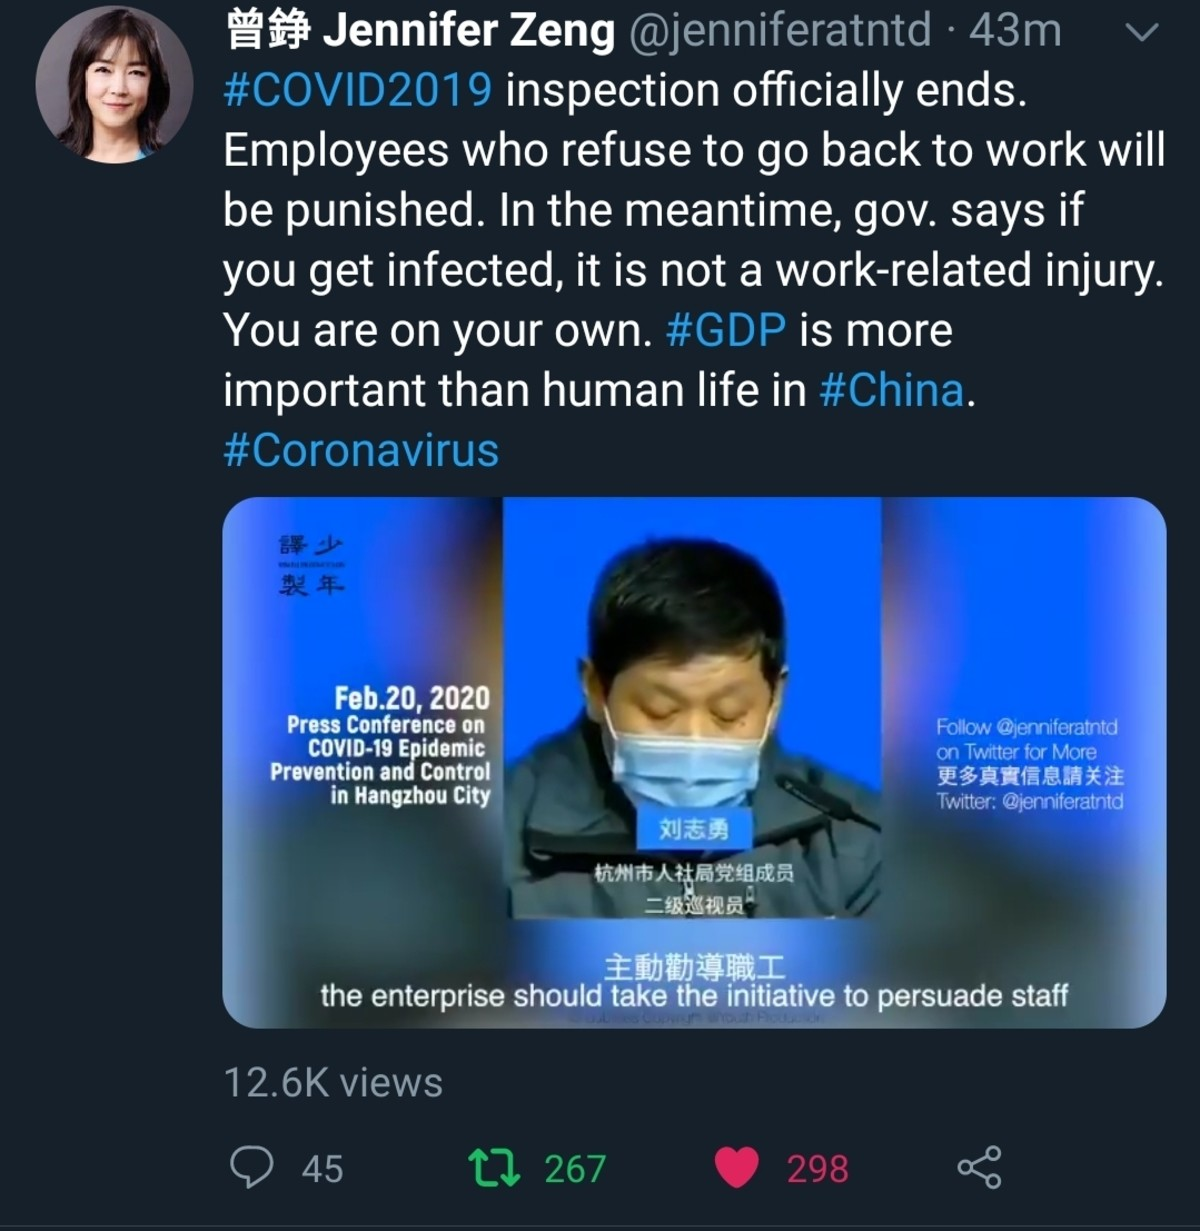 China. .. China is actually boutta kill itself for a dollar Hopefully in the aftermath people will realize once and for all that communism is . Also to not consolidate so